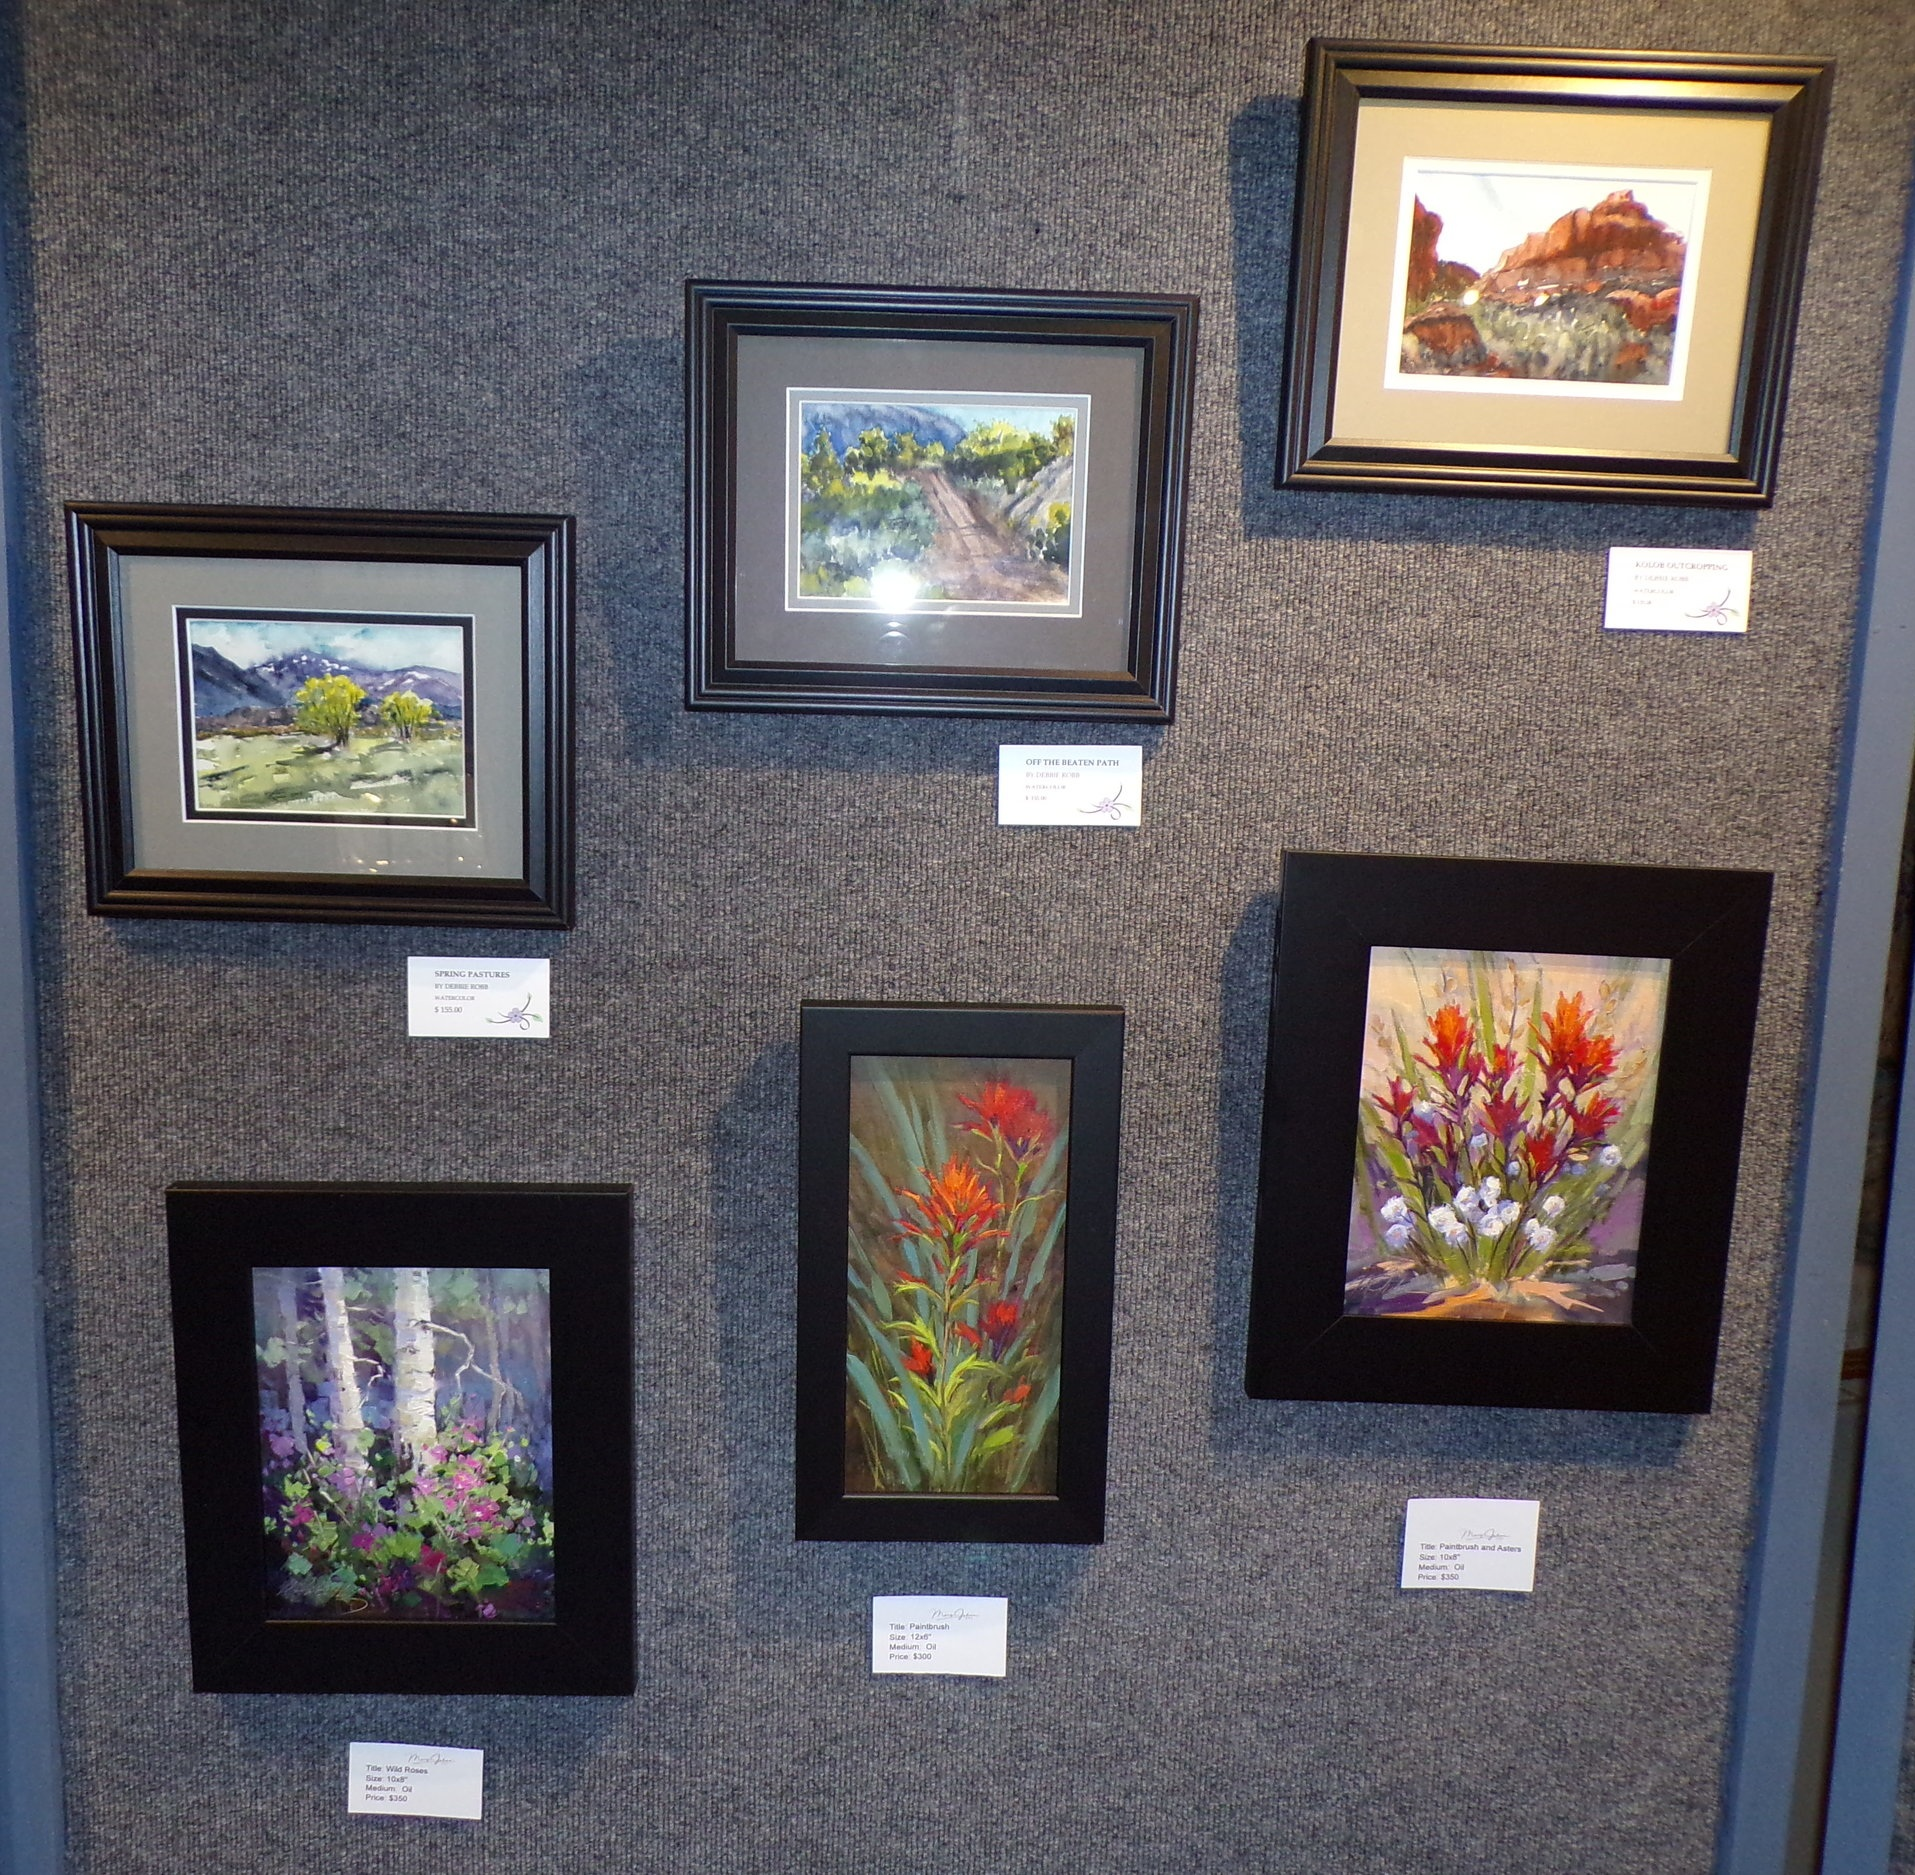 Three watercolors by Debbie Robb and three oil paintings by Mary Jabens.